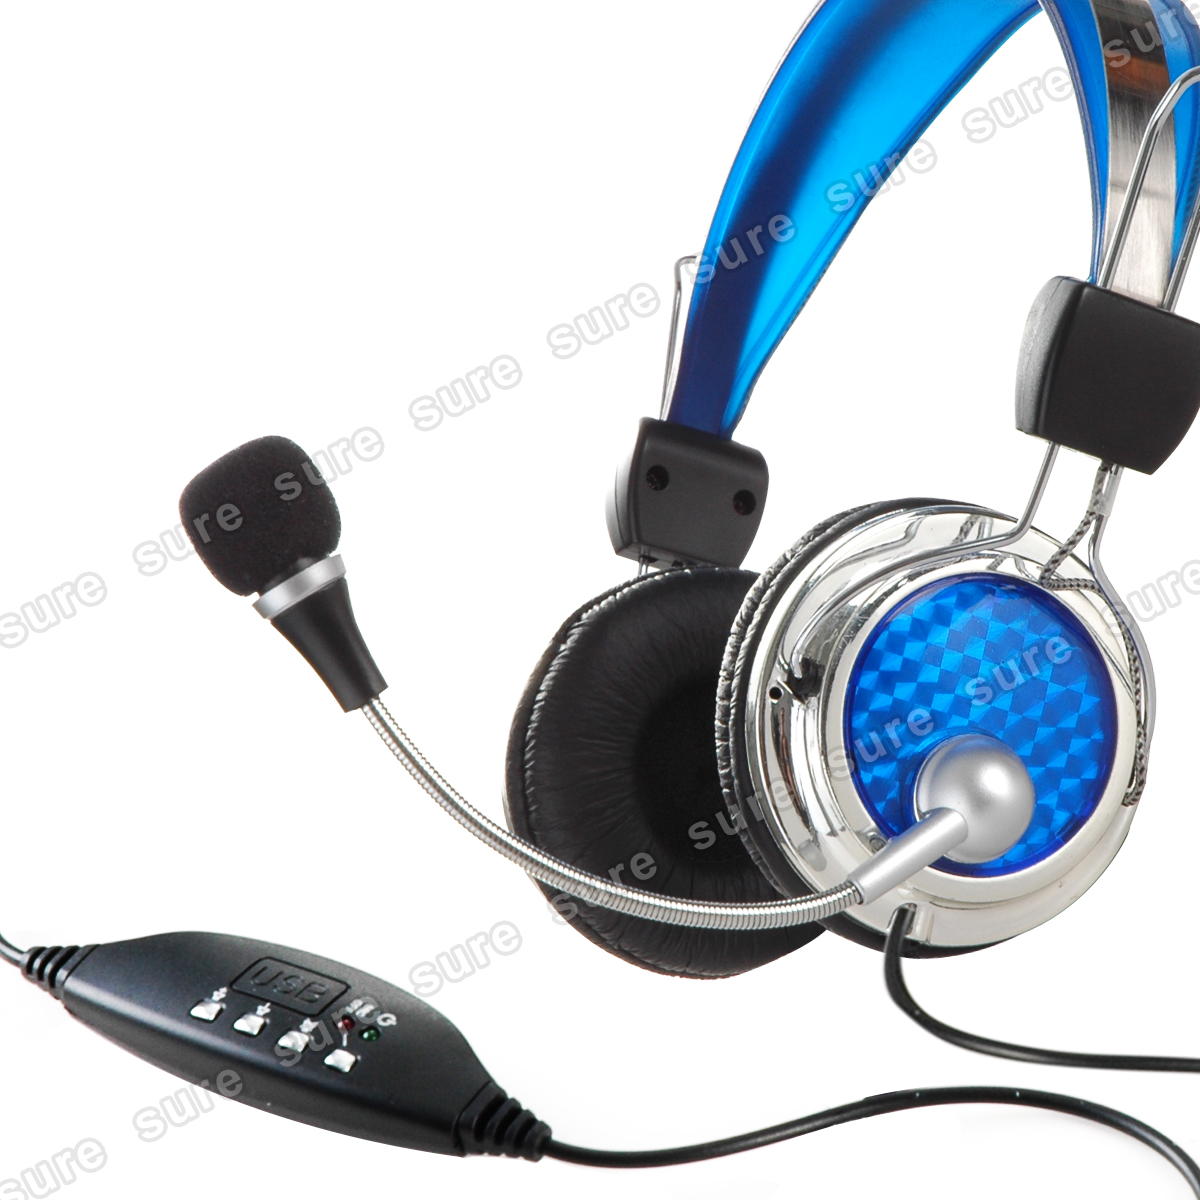 USB-Stereo-Headset-Kopfhoerer-Kopfbuegel-Mikrofon-Mic-fuer-Notebook-Laptop-PC